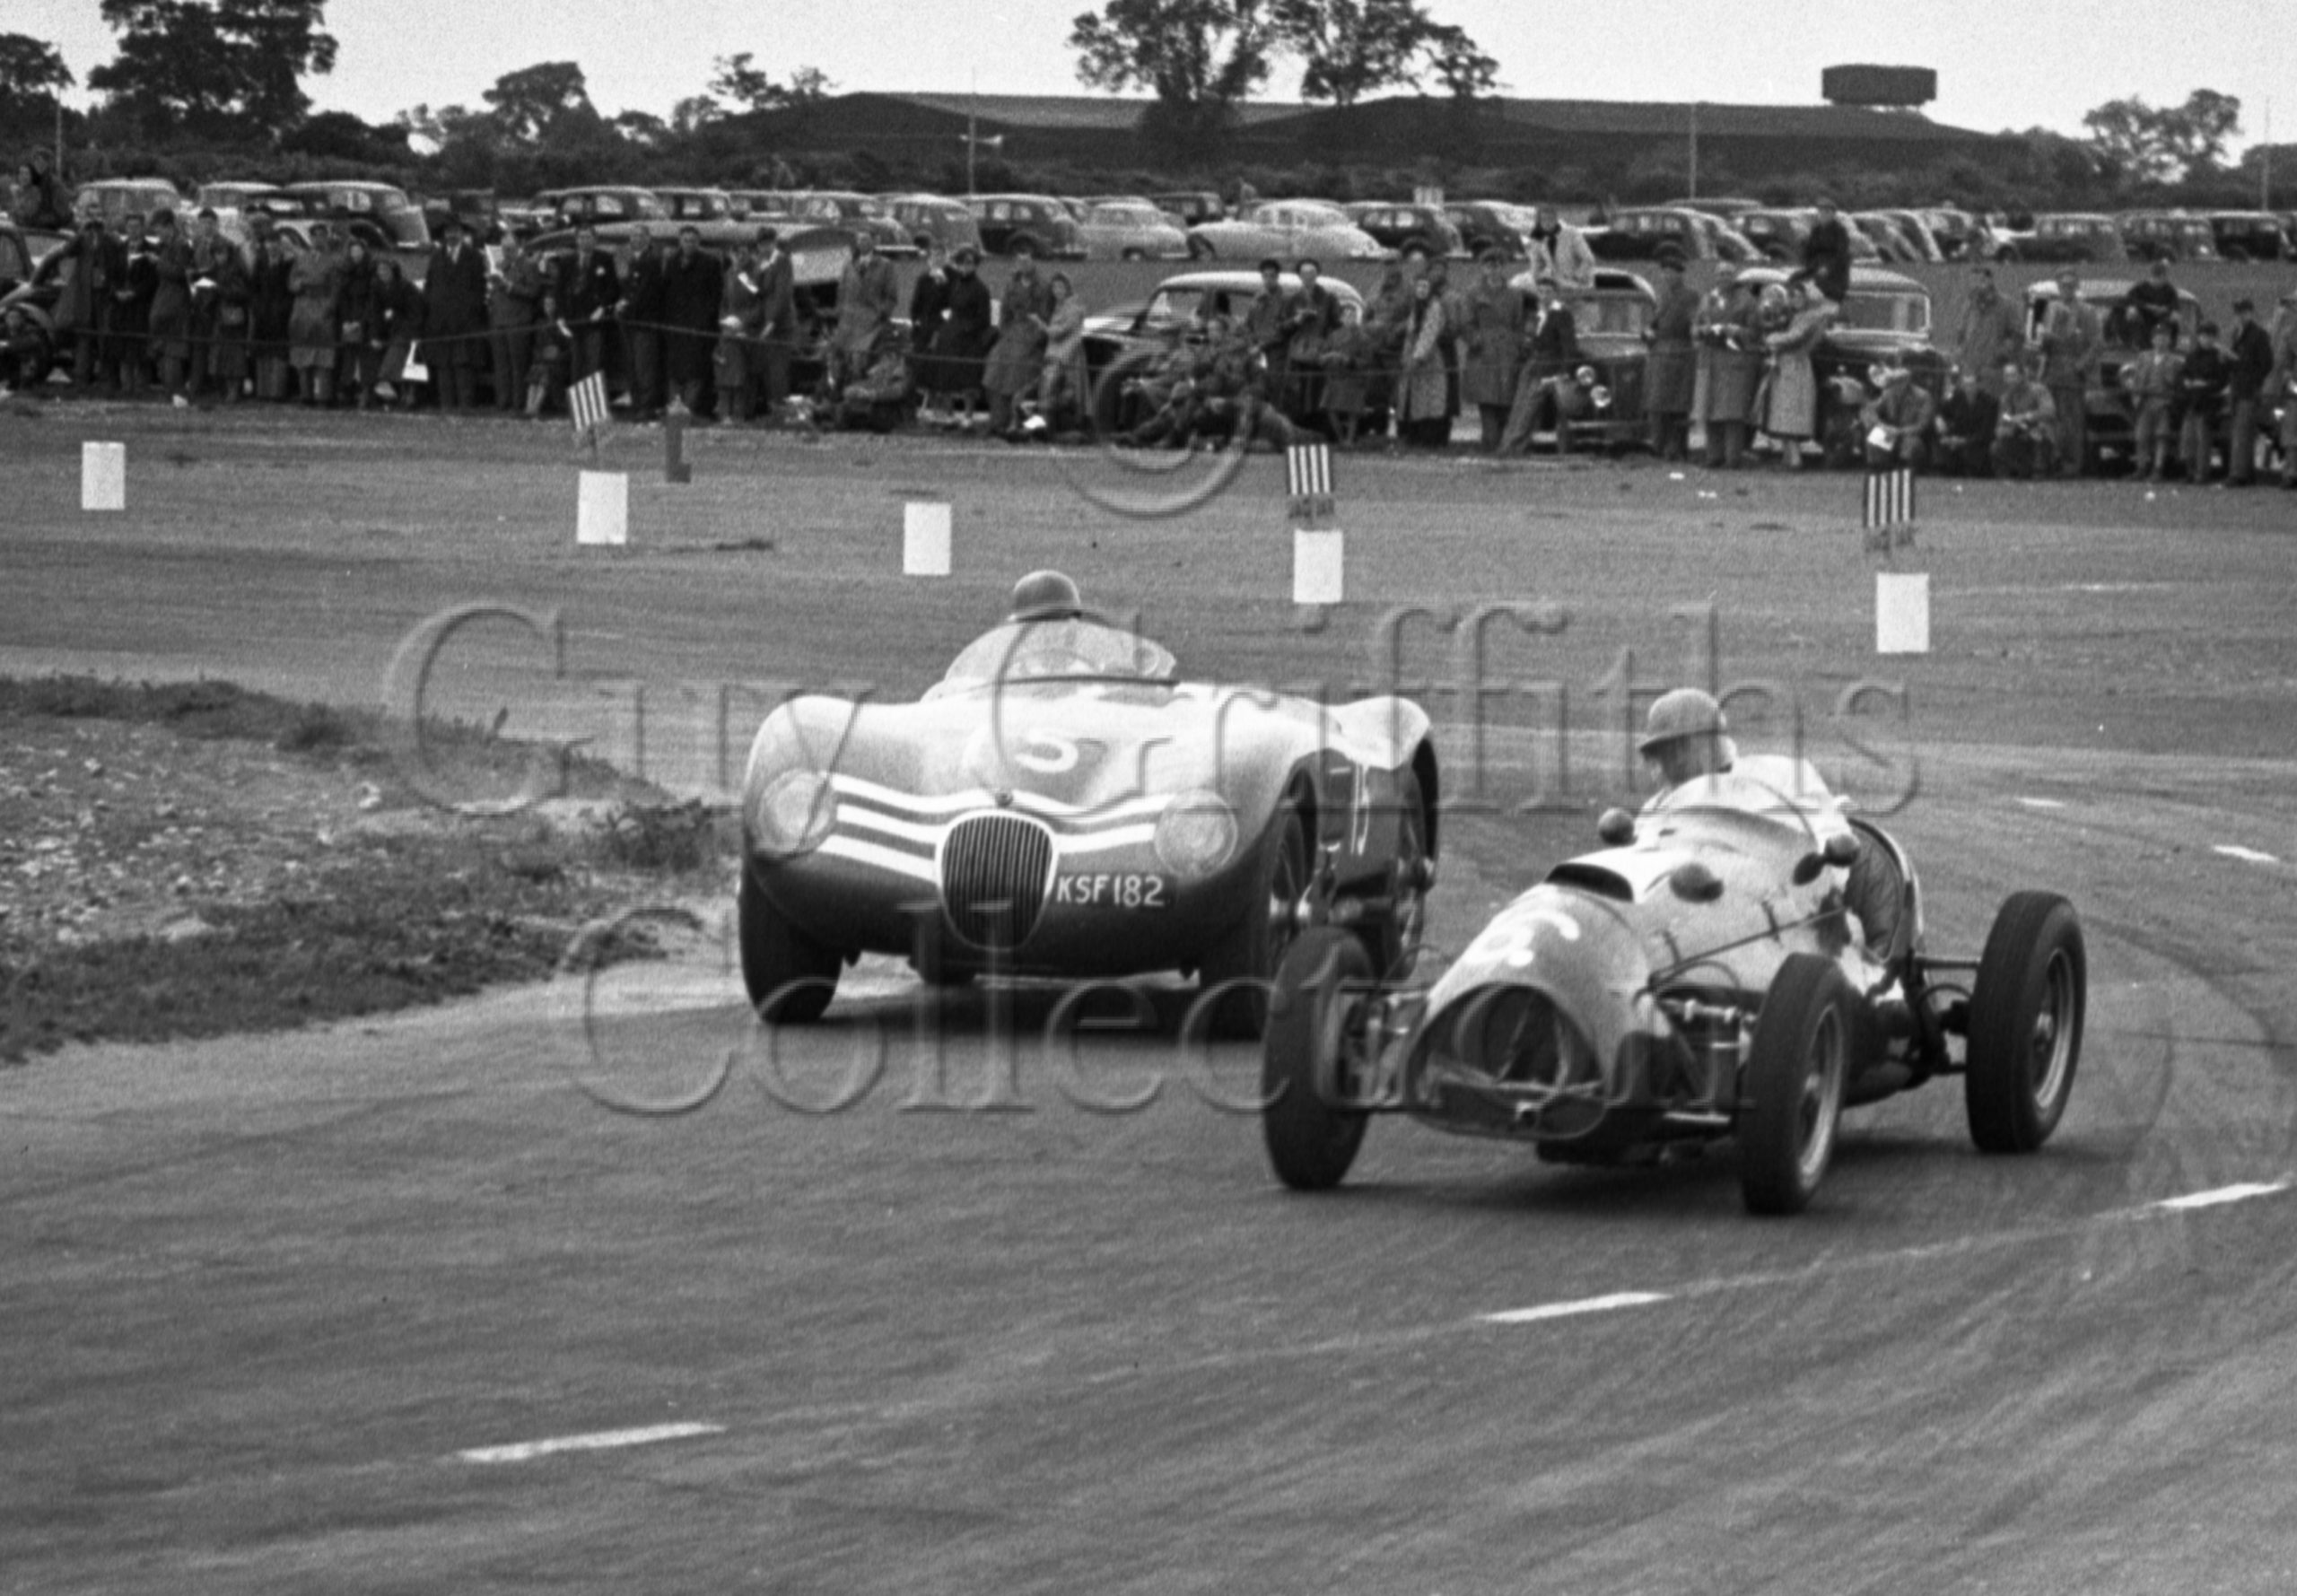 70-874–J-Lawrence–Jaguar-C-Type-KSF-182–Snetterton–30-05-1953.jpg - Guy Griffiths Collection